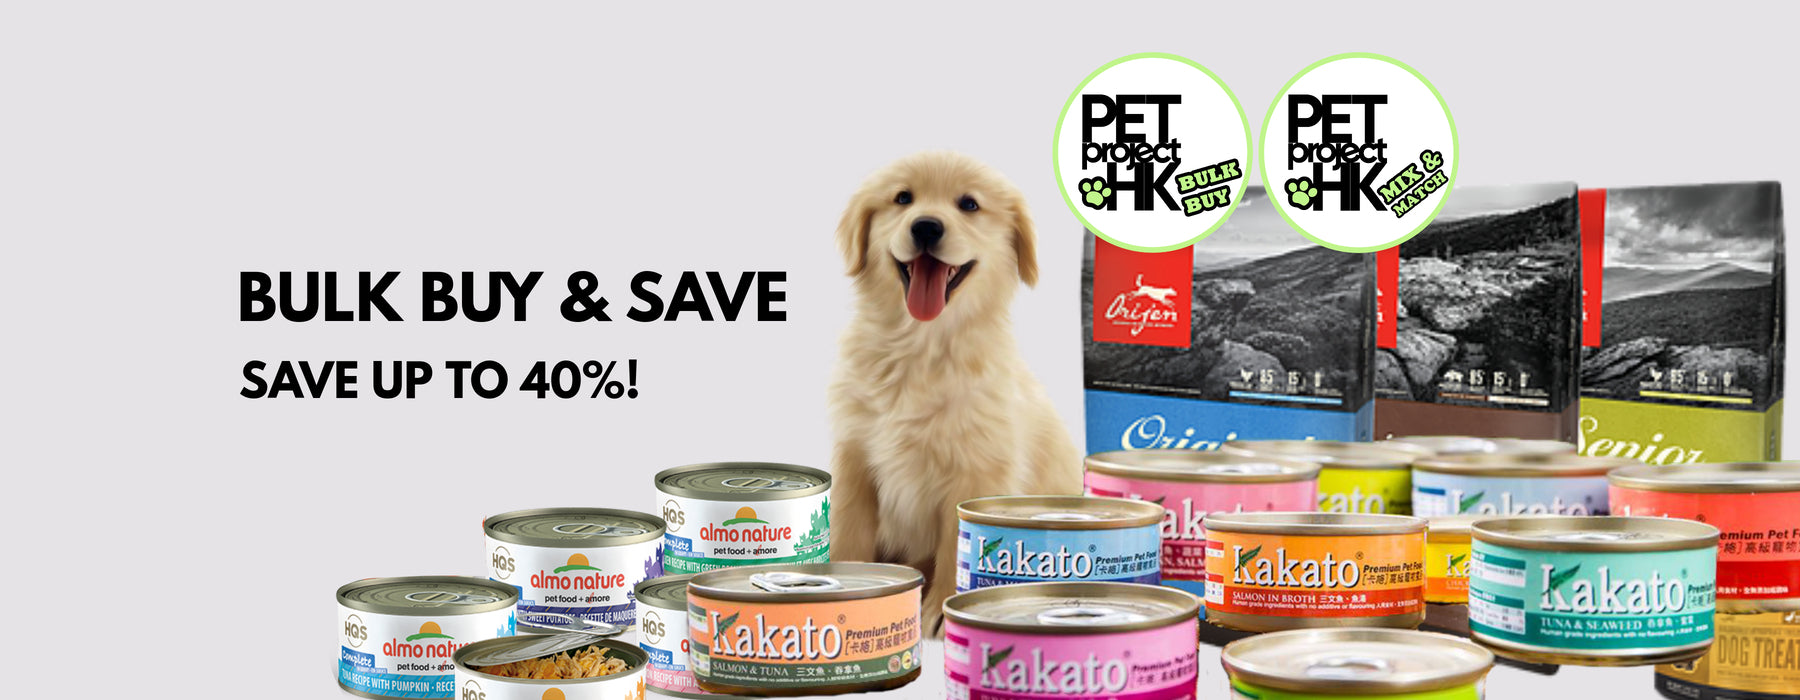 PetProject HK: Things for Pets, Delivered